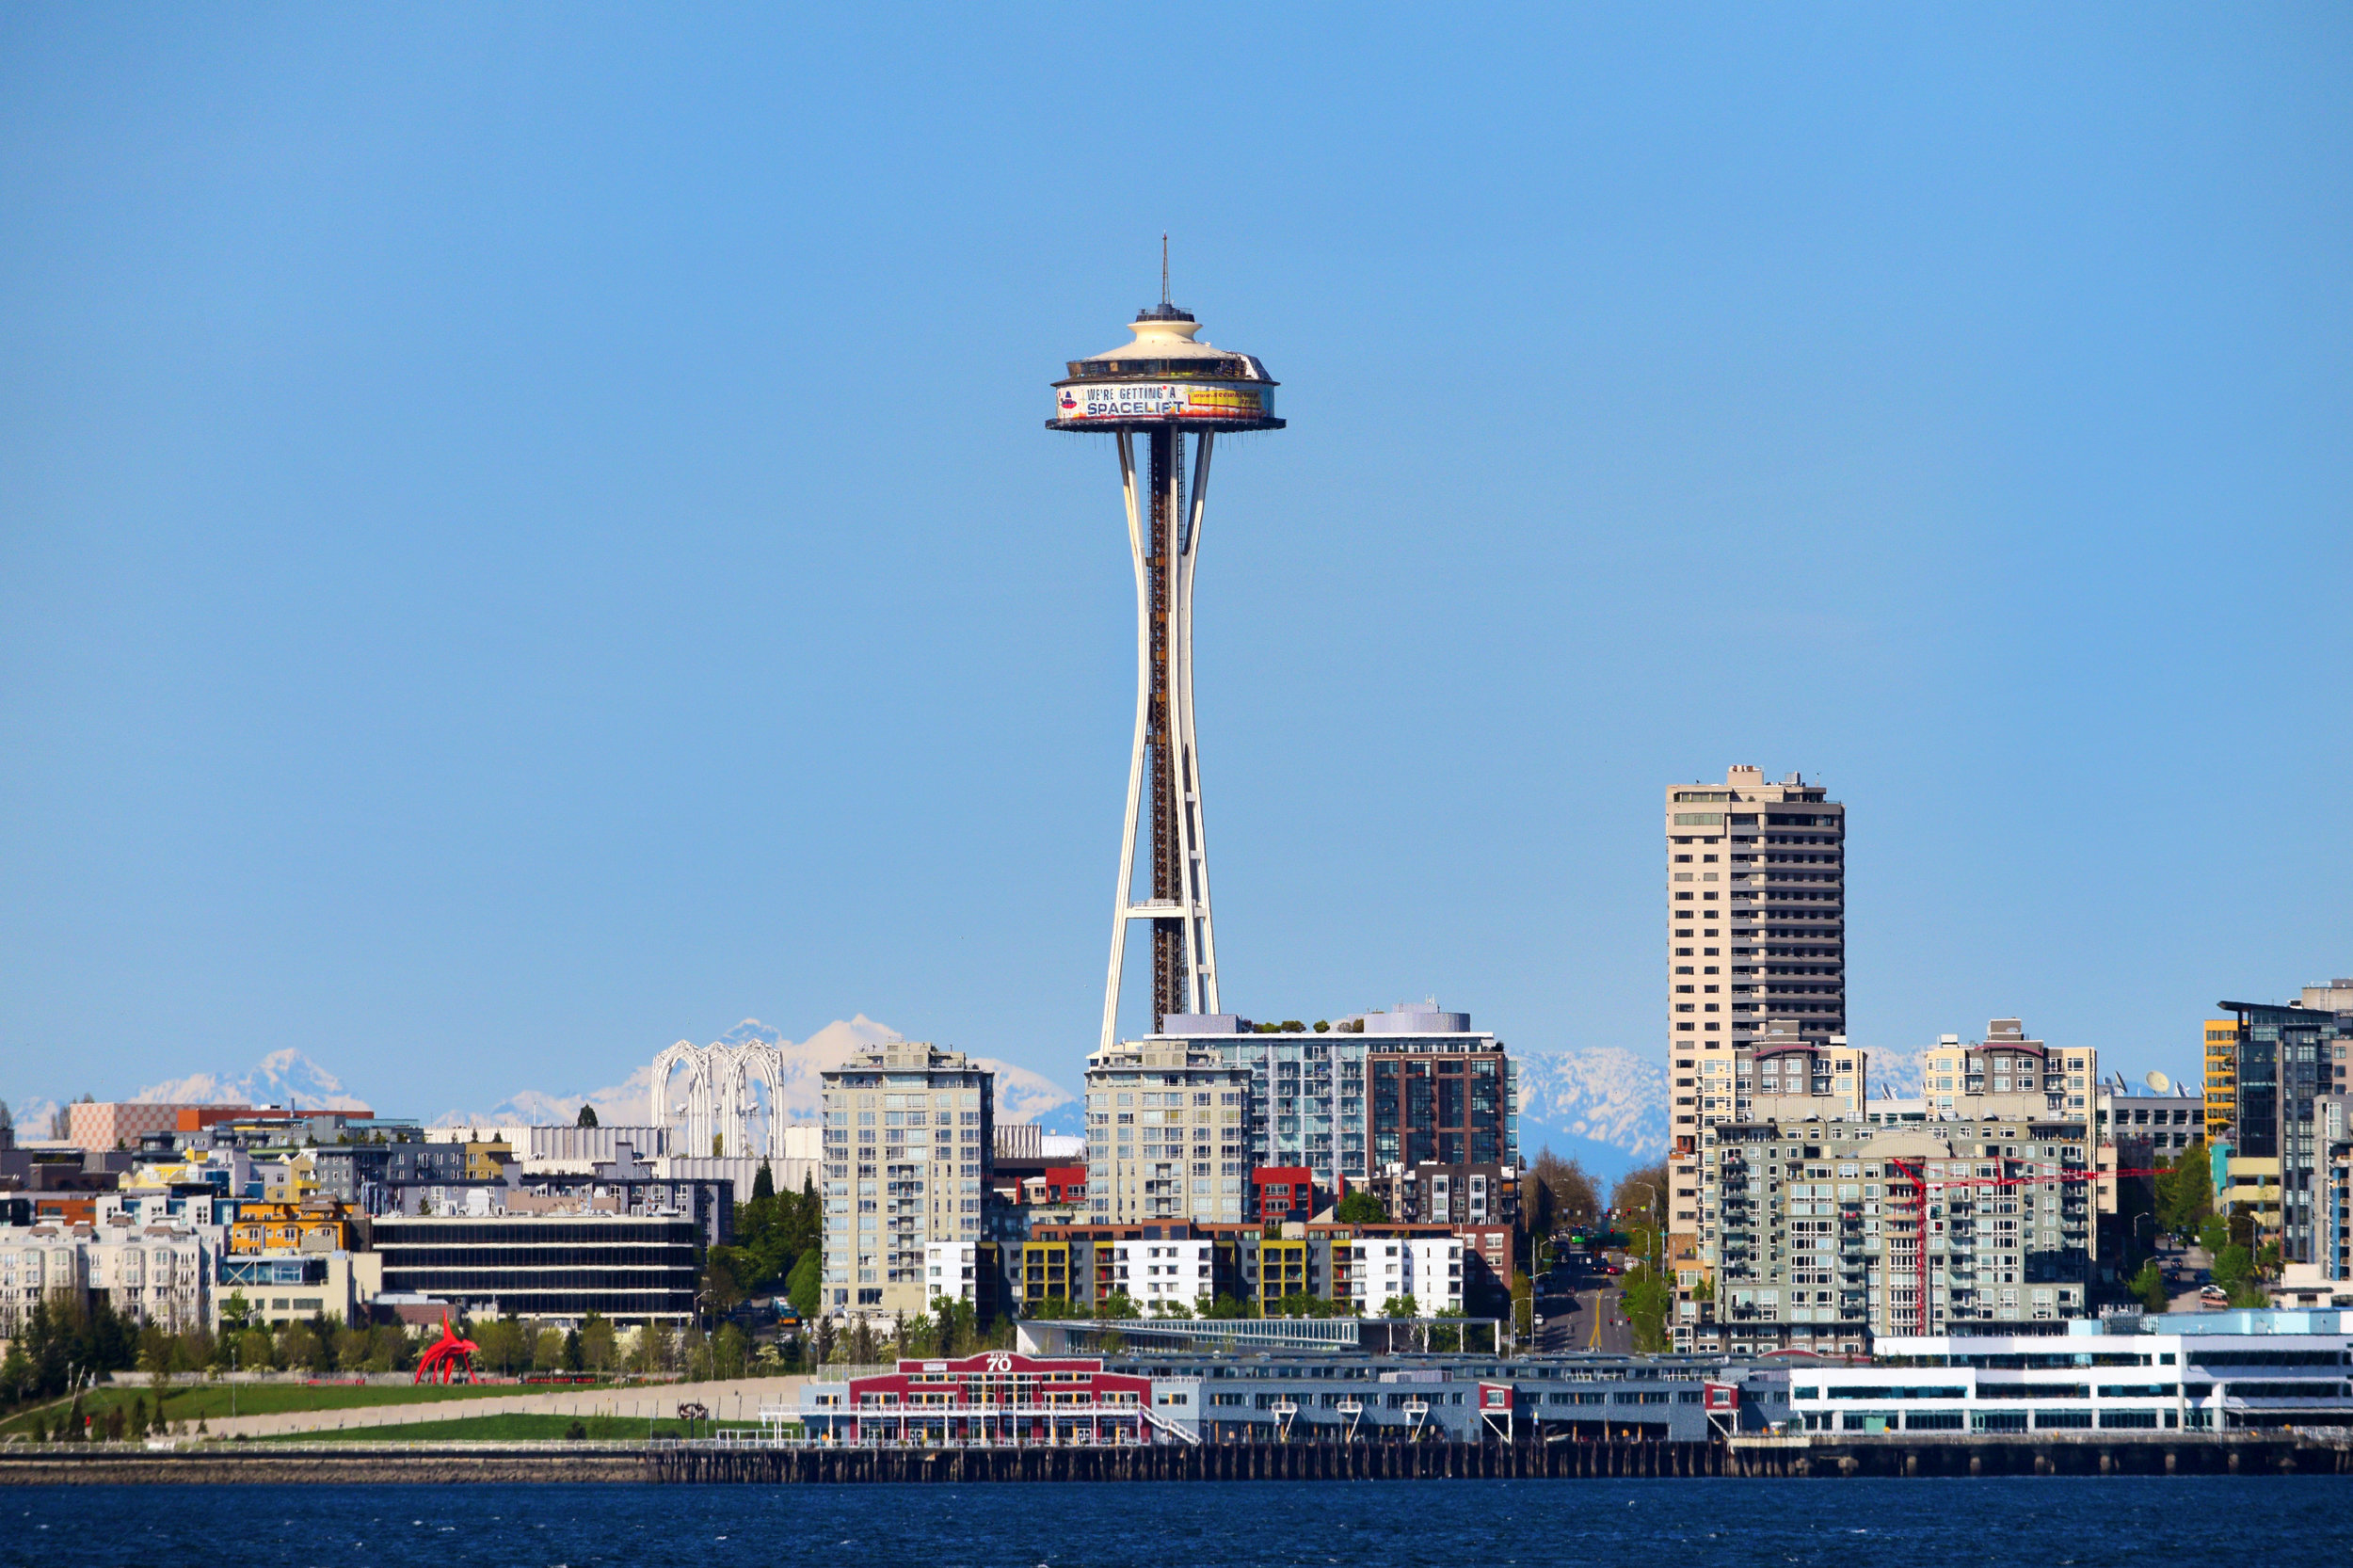 Seattle Skyline_Space Needle_NWDW_Largekyleventlernwdrone.jpg